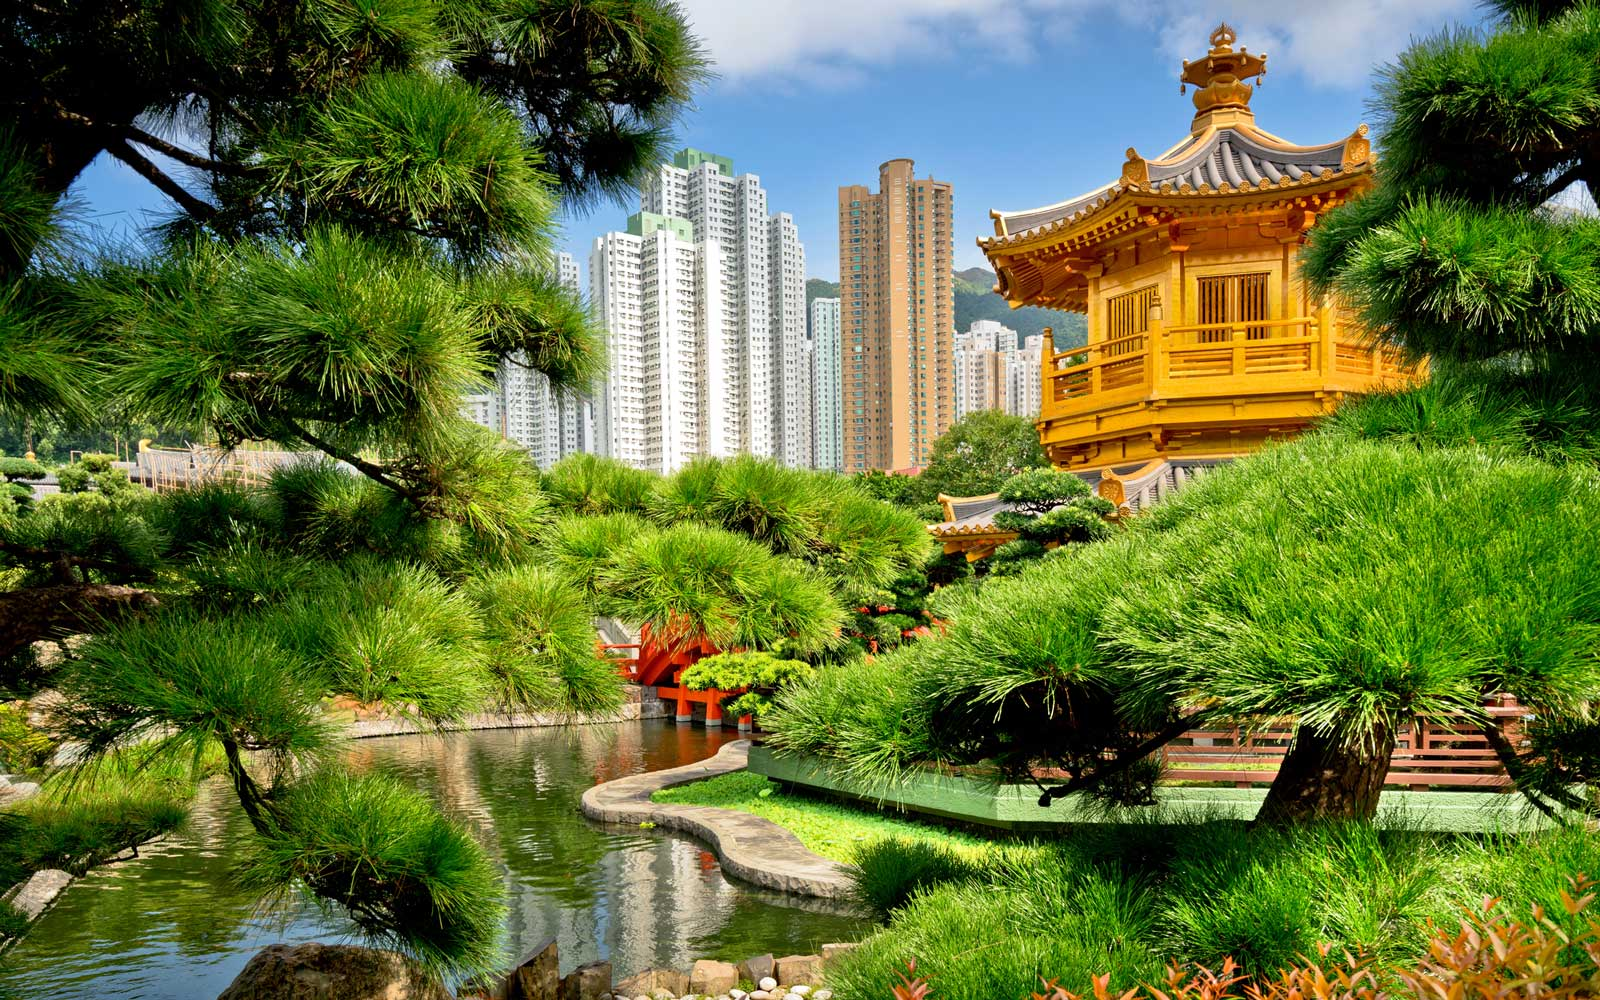 Public Nan Lian Garden situated at Diamond hill